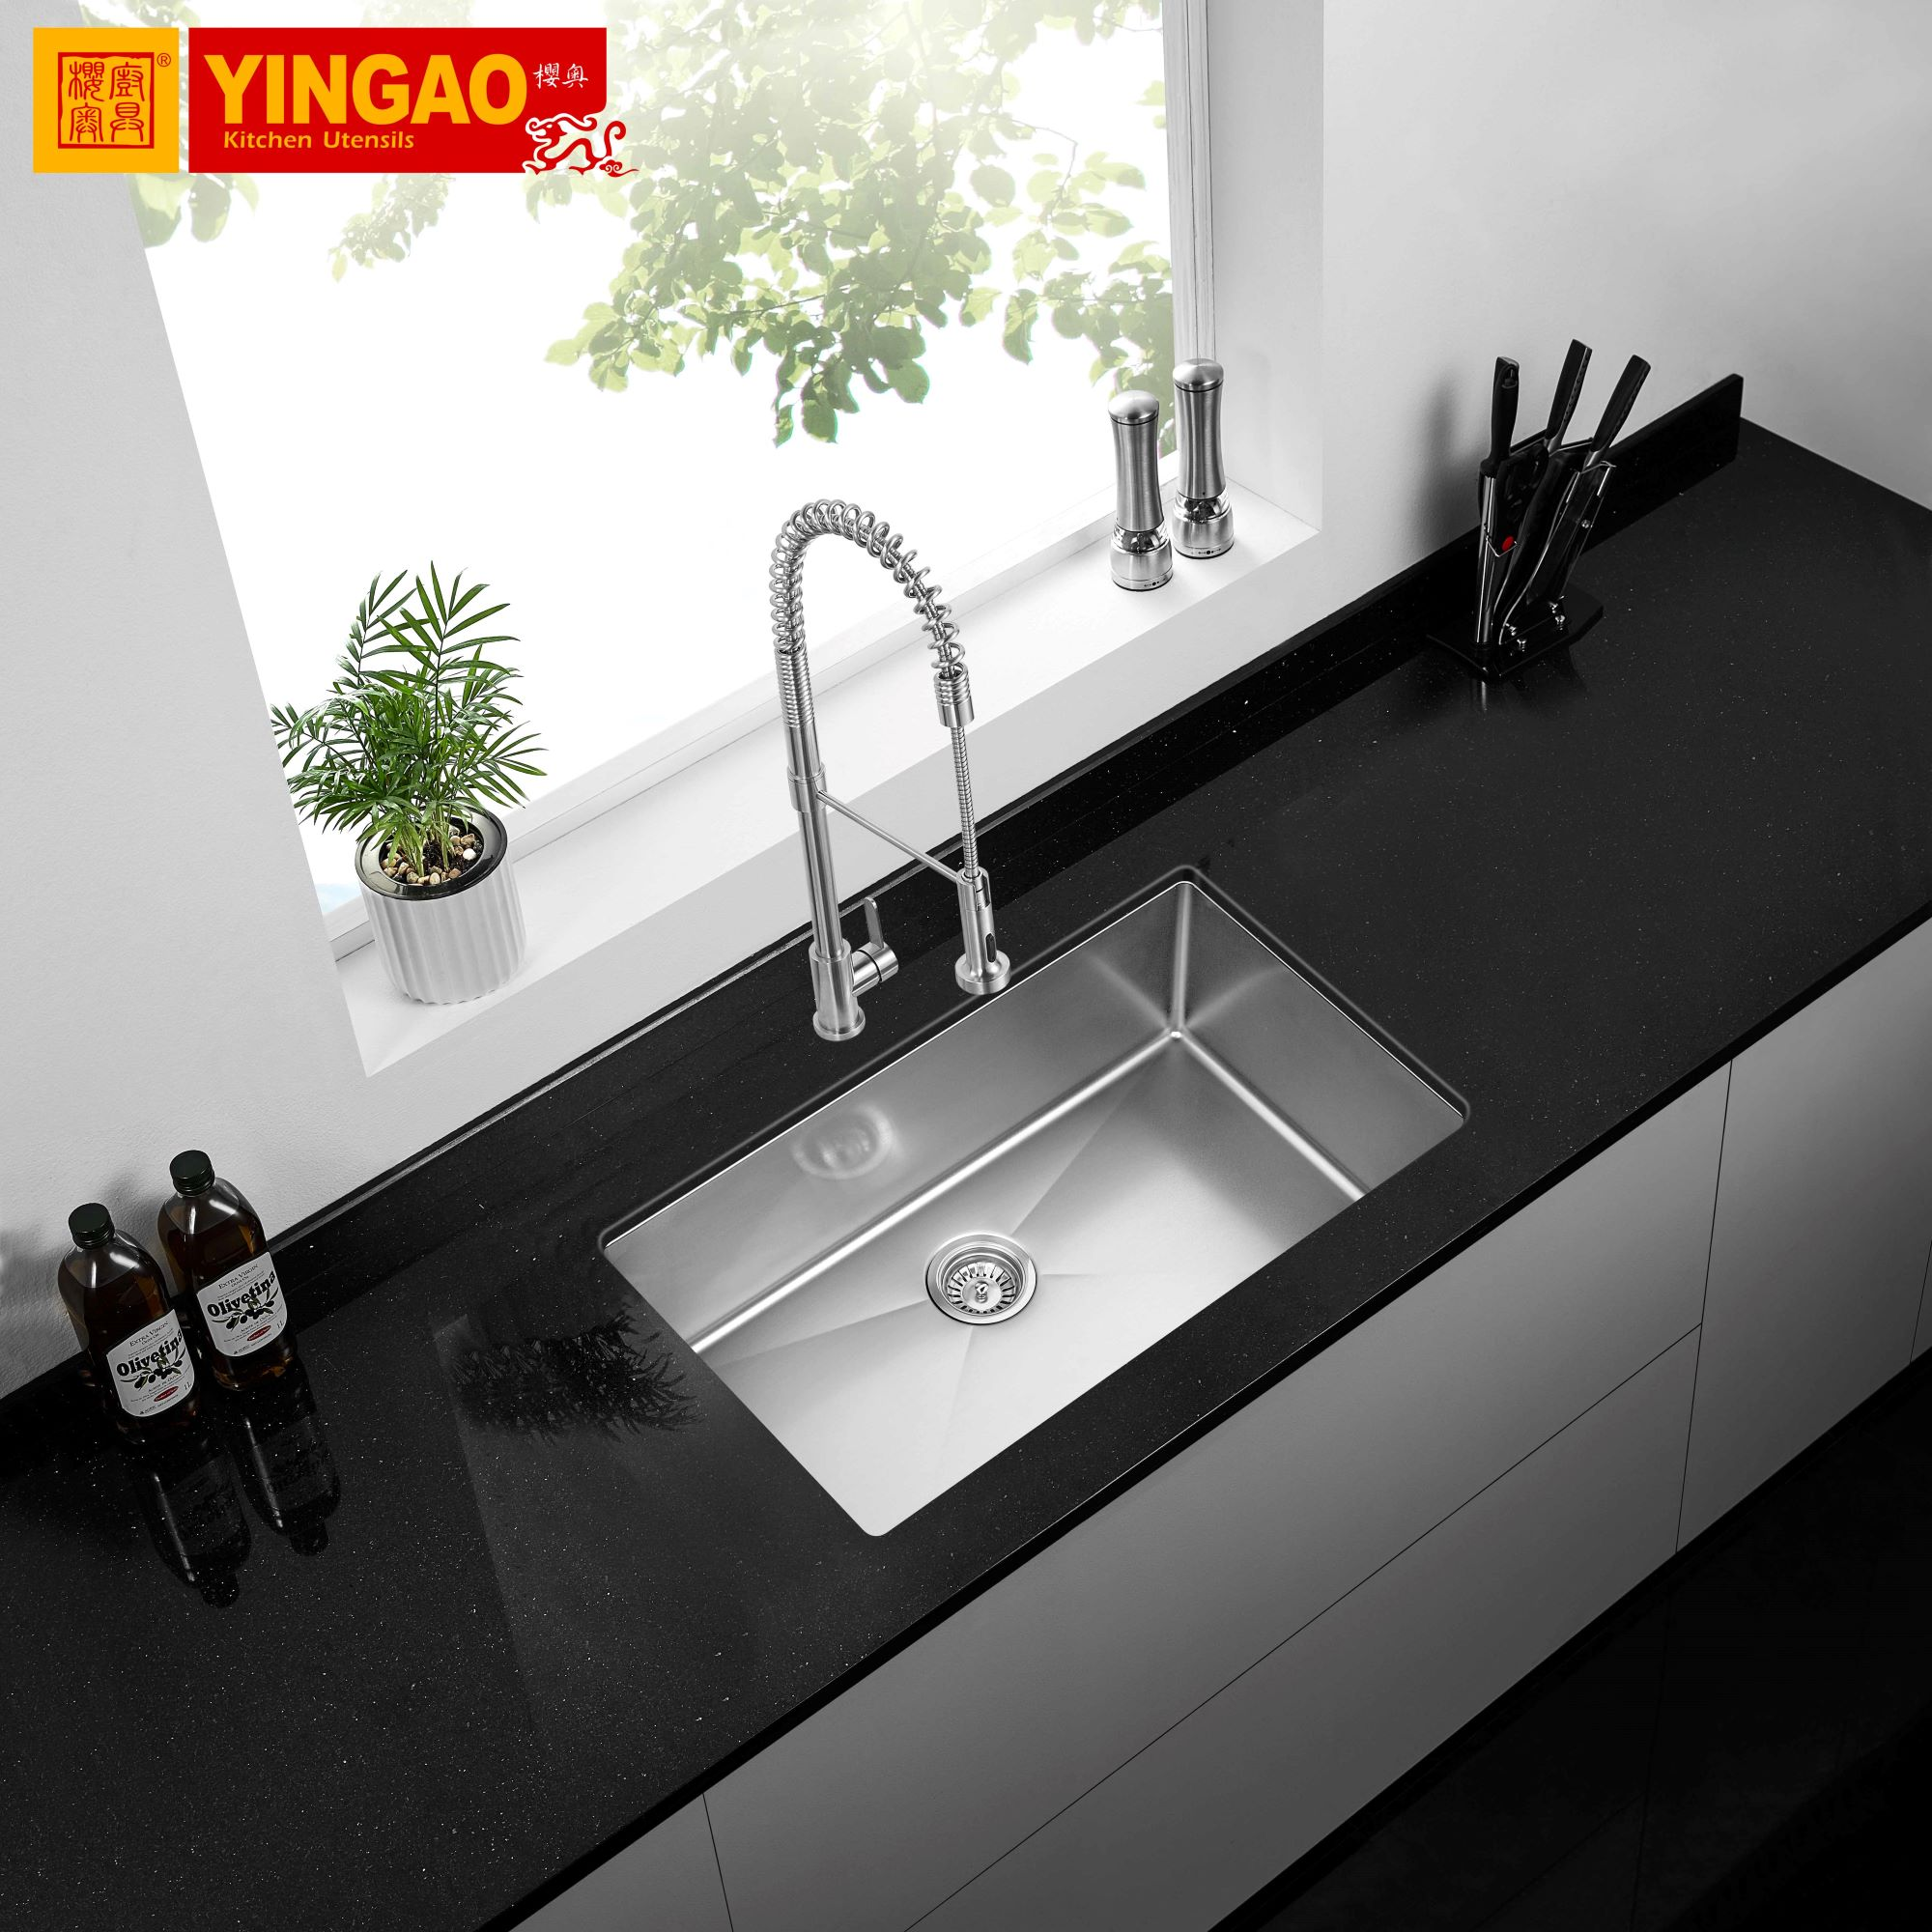 Standard Size Flexible Stainless Steel Sus 304 Single Bowl Kitchen Sink View Rv Sinks Oem Product Details From Guangdong Yingao Kitchen Utensils Co Ltd On Alibaba Com